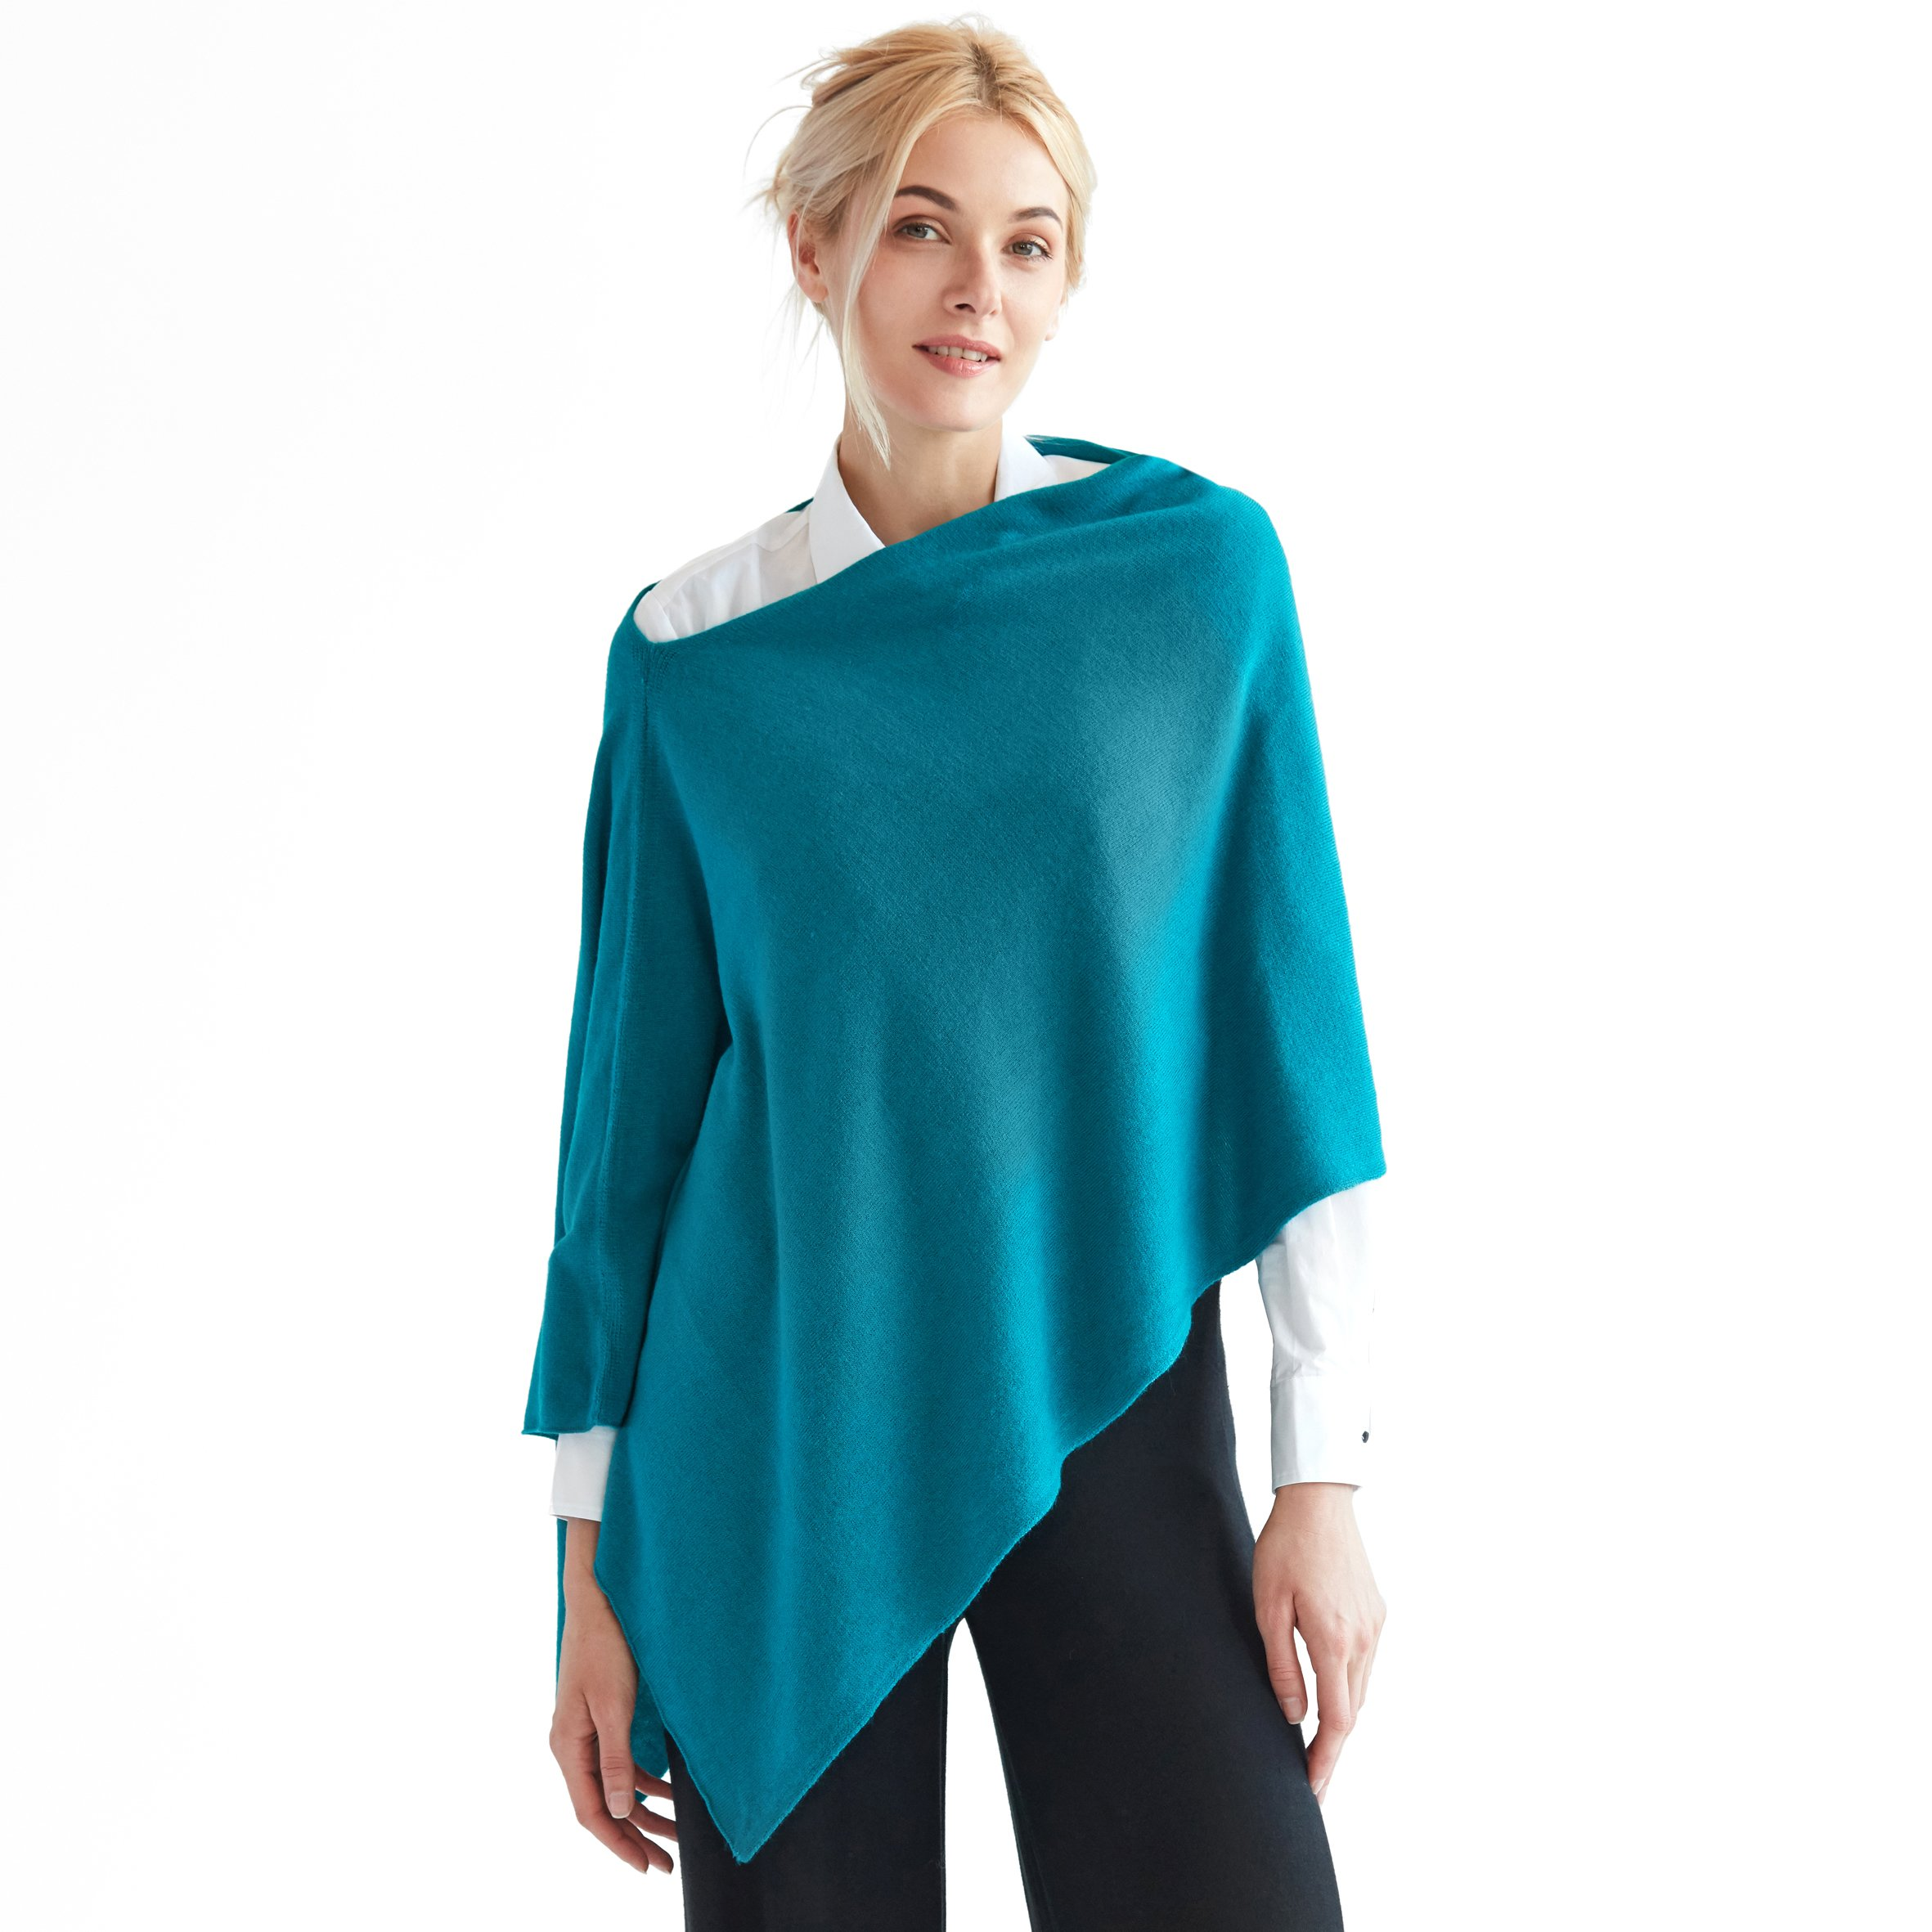 Sunny Tag Faux Cashmere Acrylic 3-in-One Knitted Poncho Topper Wrap Scarf Sweater Cardigan, Machine Washable with FREE Linen Pouch, Teal Blue, One Size Fits Most.